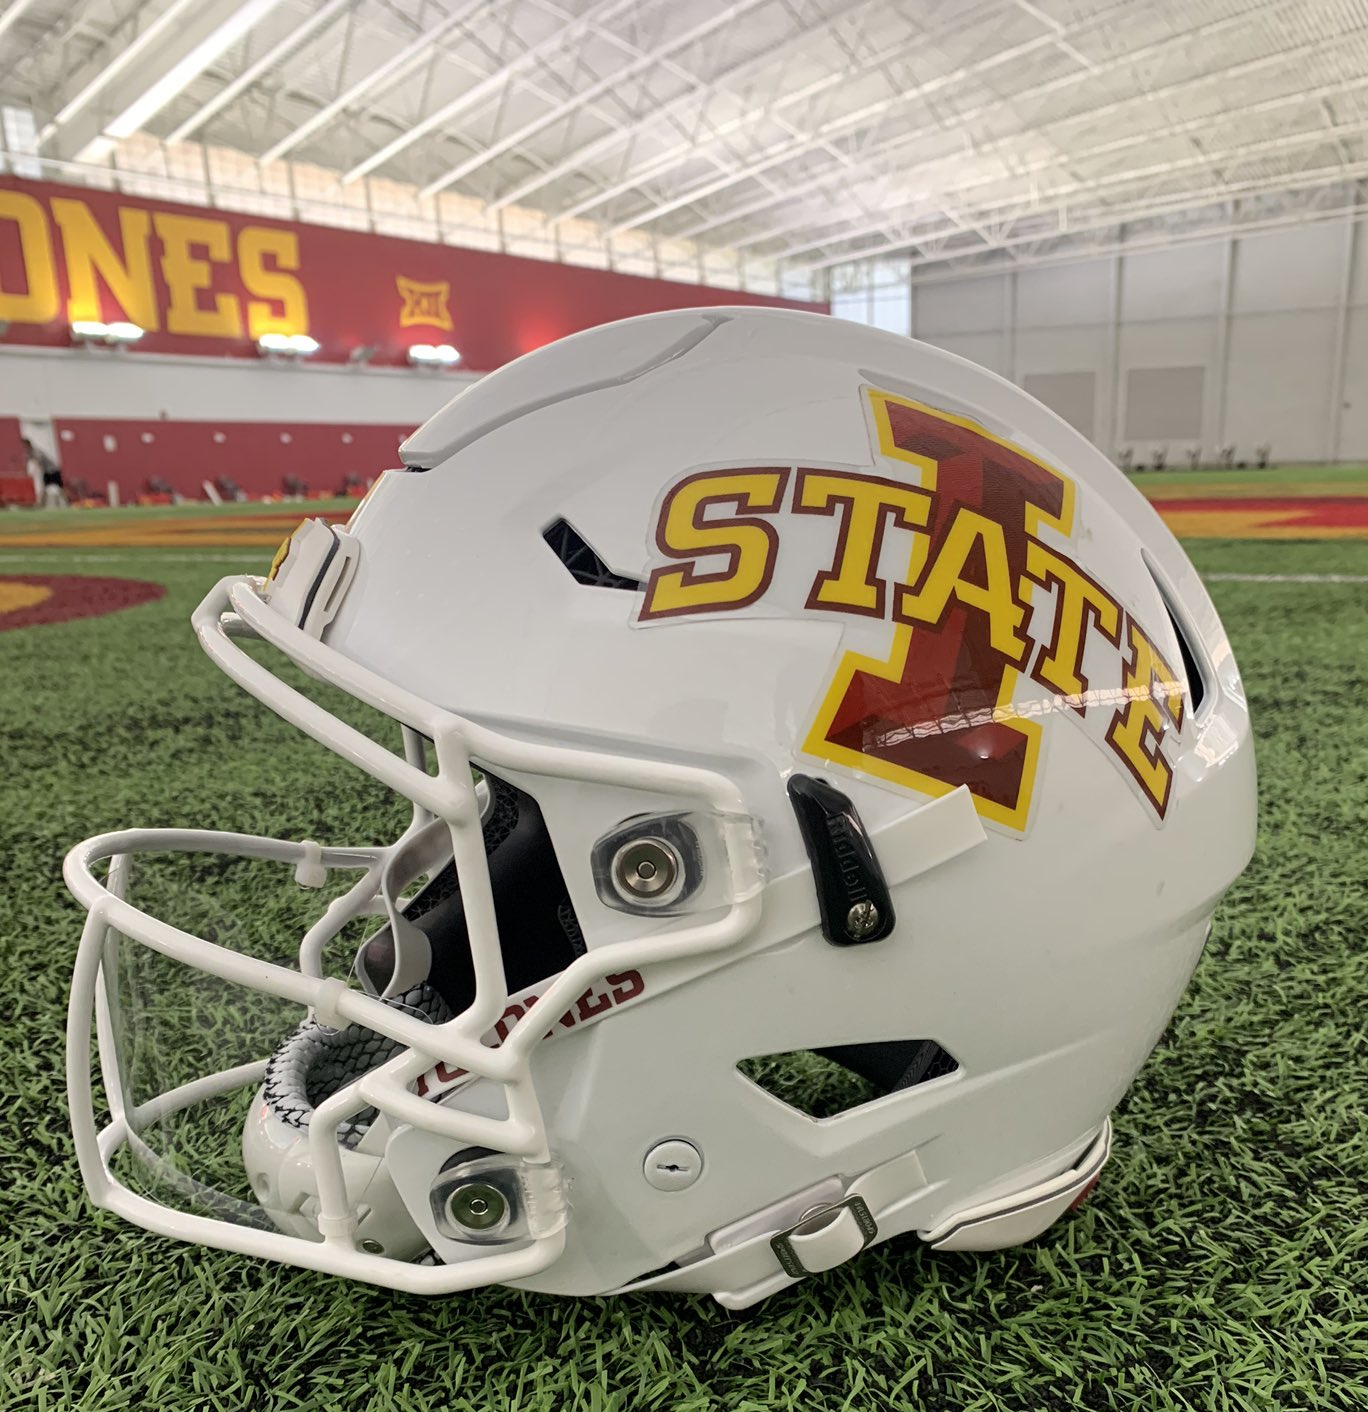 A white football helmet with the I-State athletic logo in red and yellow on the side